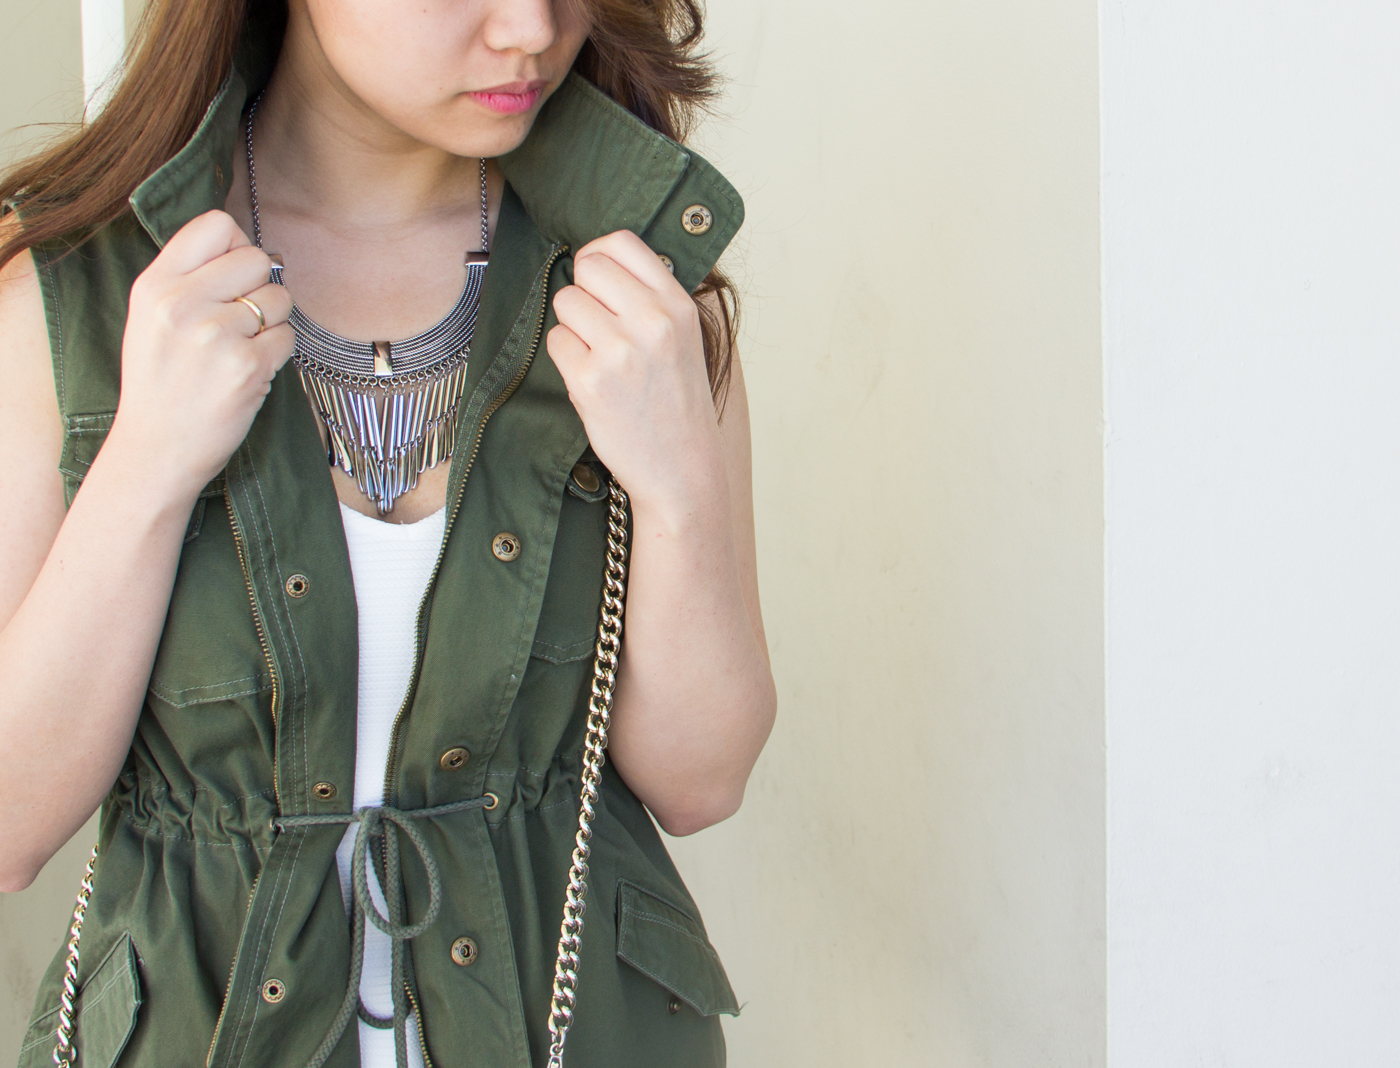 Military vest & statement necklace   via The Chic Diary